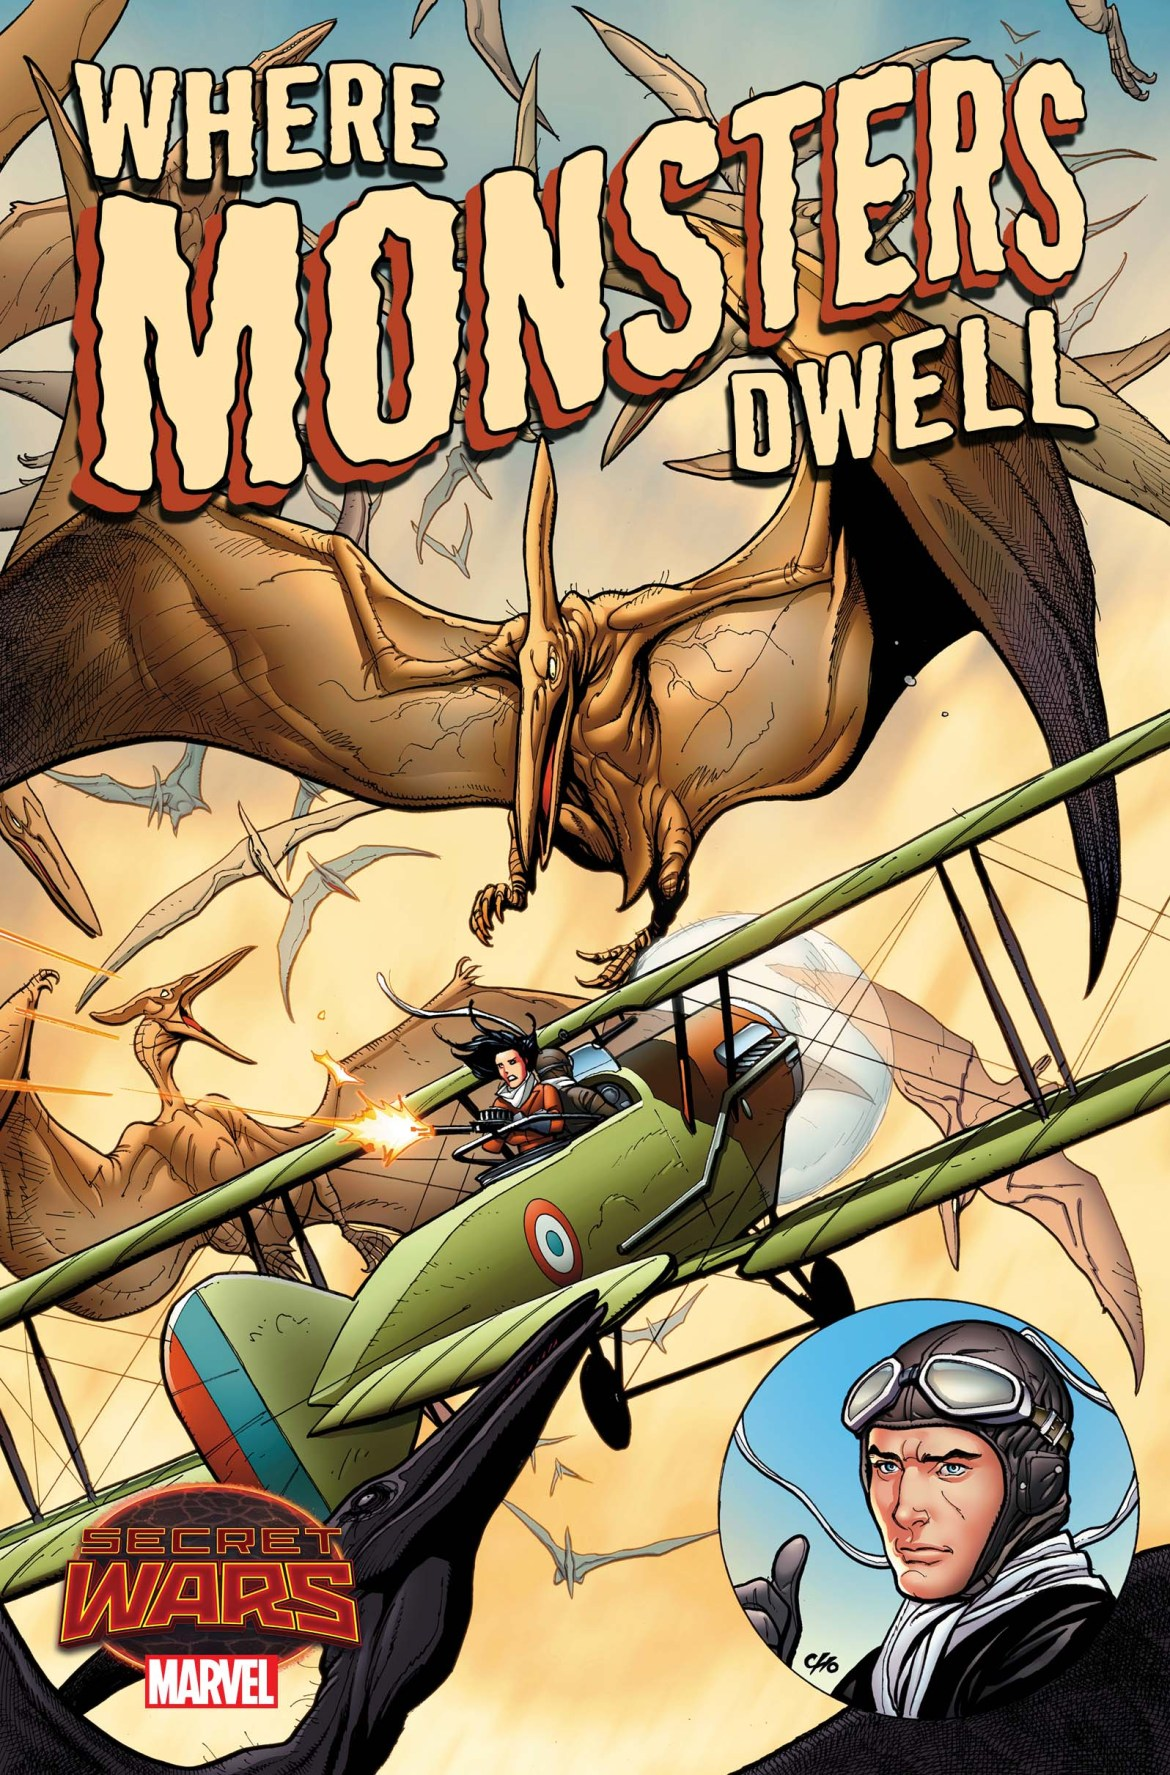 Where_Monsters_Dwell_1_Cover SECRET WARS will reveal WHERE MONSTERS DWELL